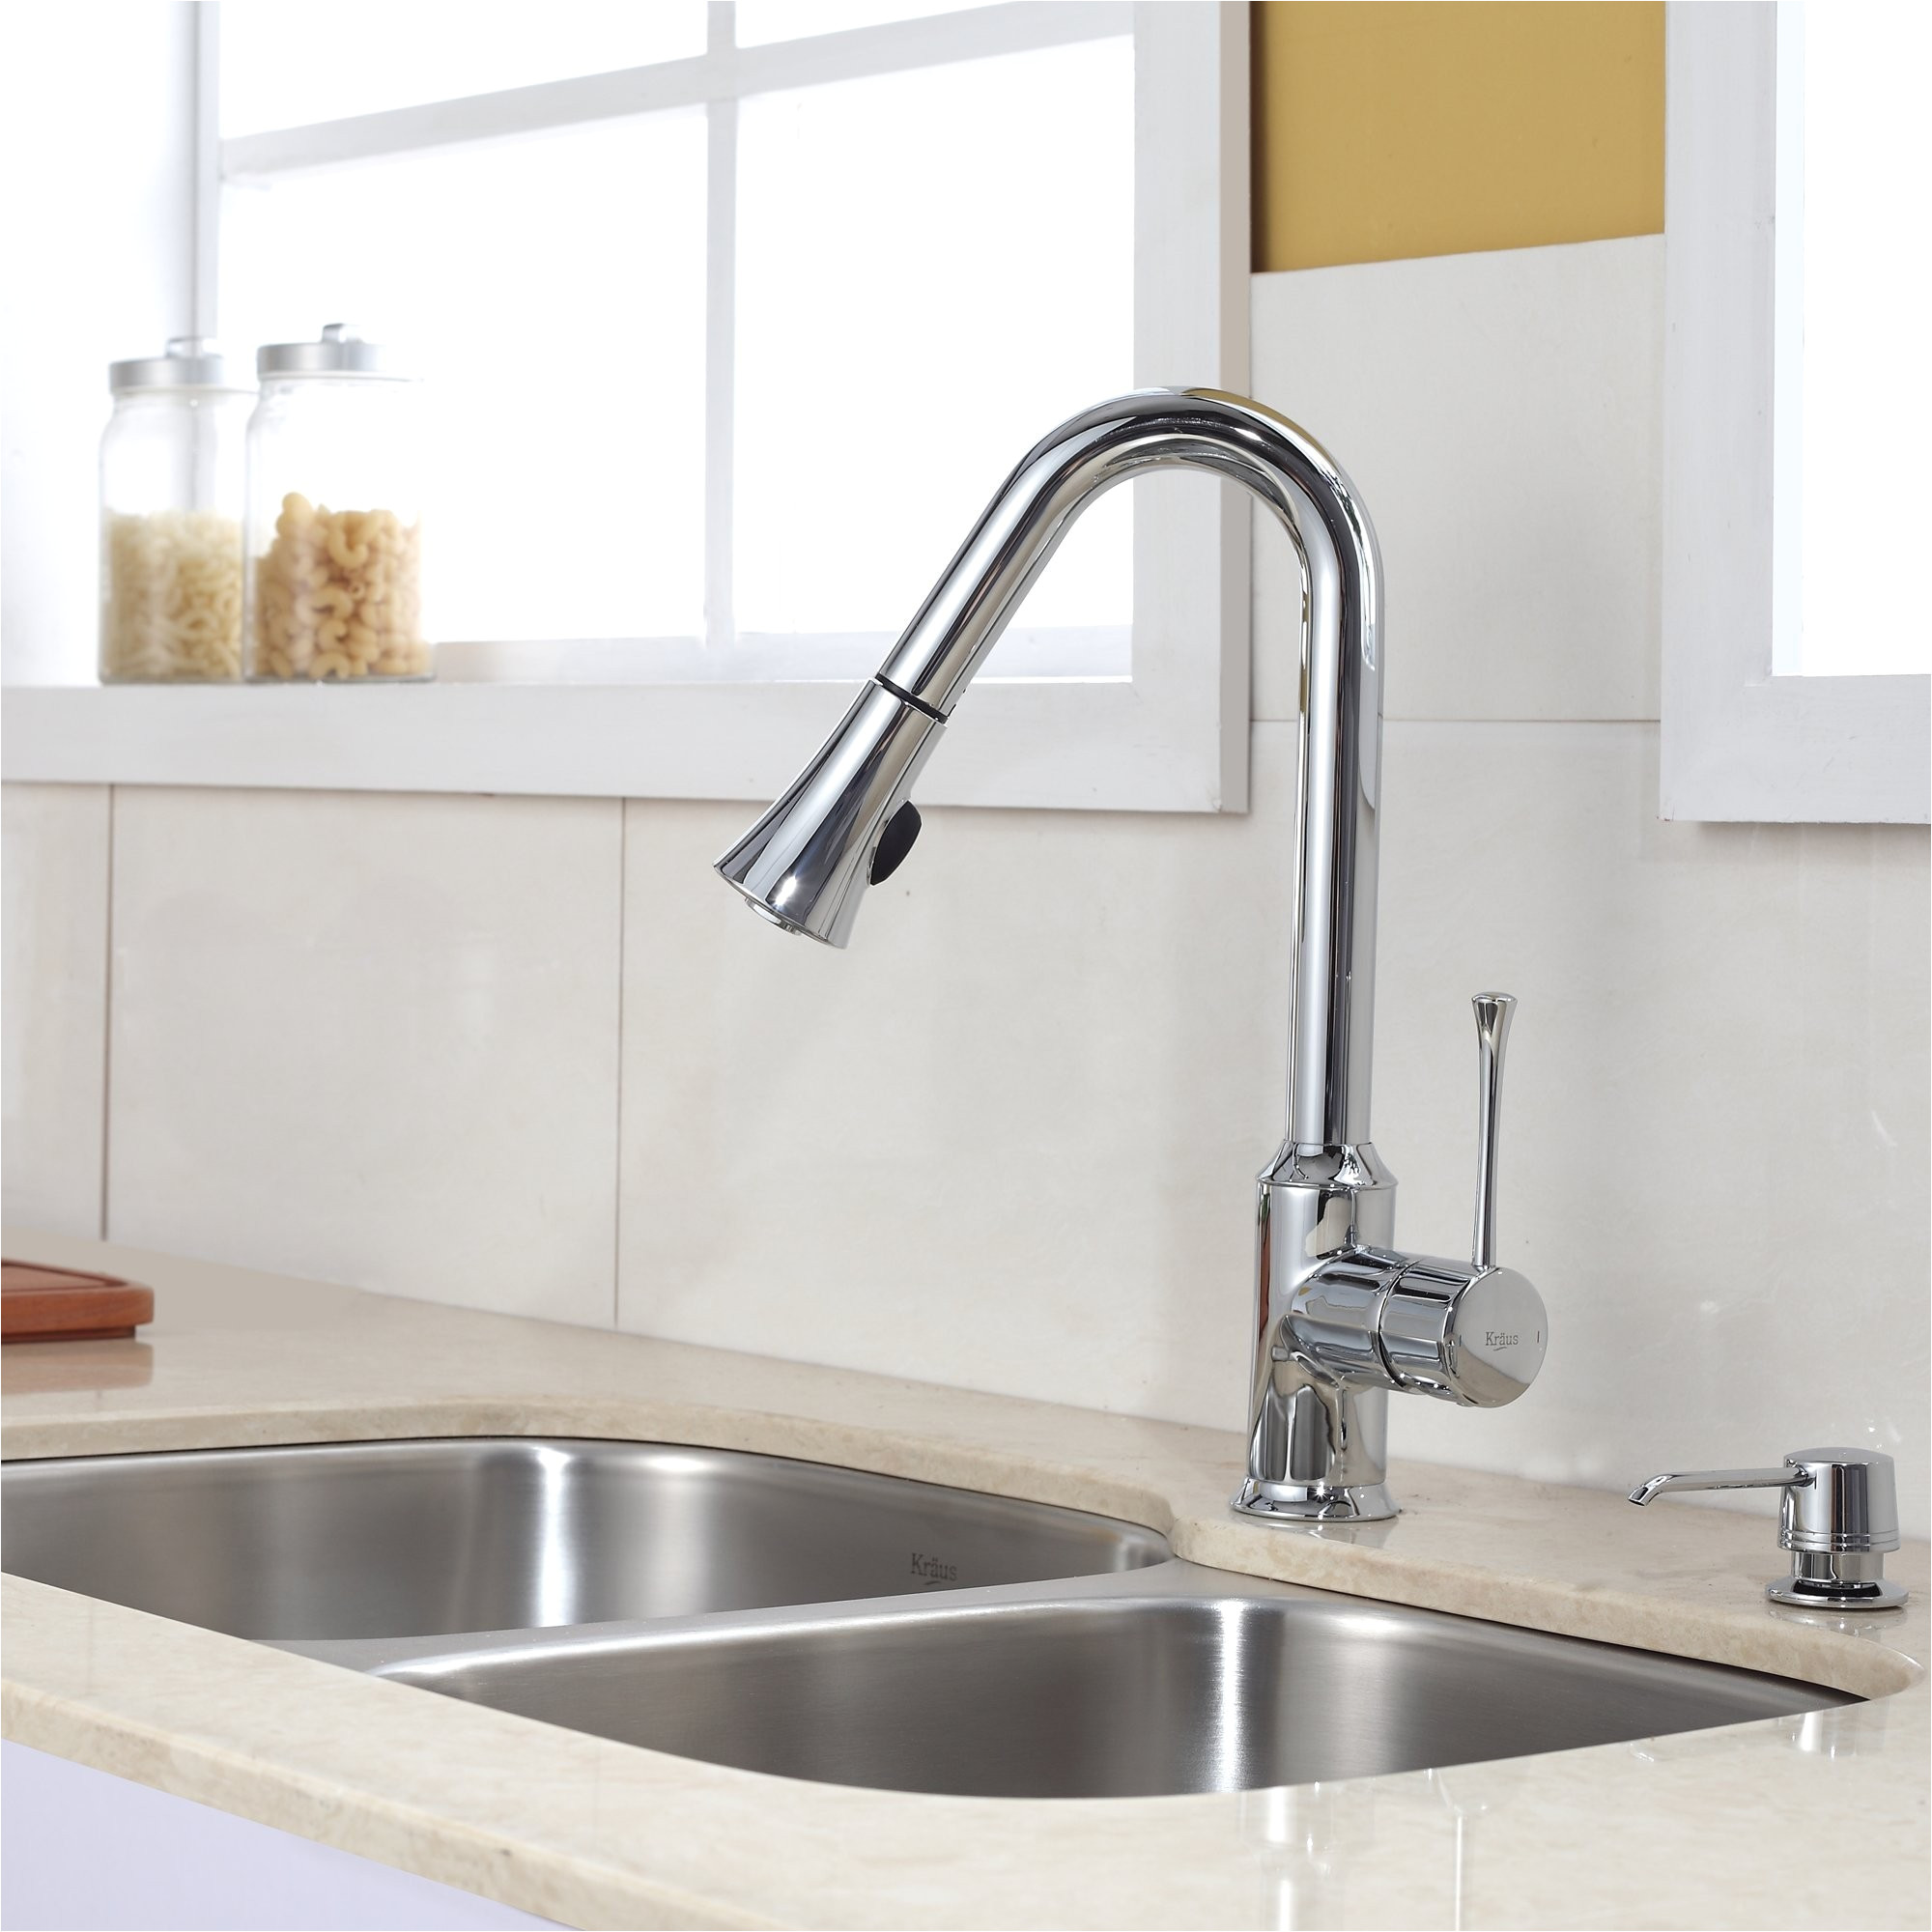 drop in farmhouse sink ikea best of 10 beautiful farmhouse kitchen sink ikea chexydecimal